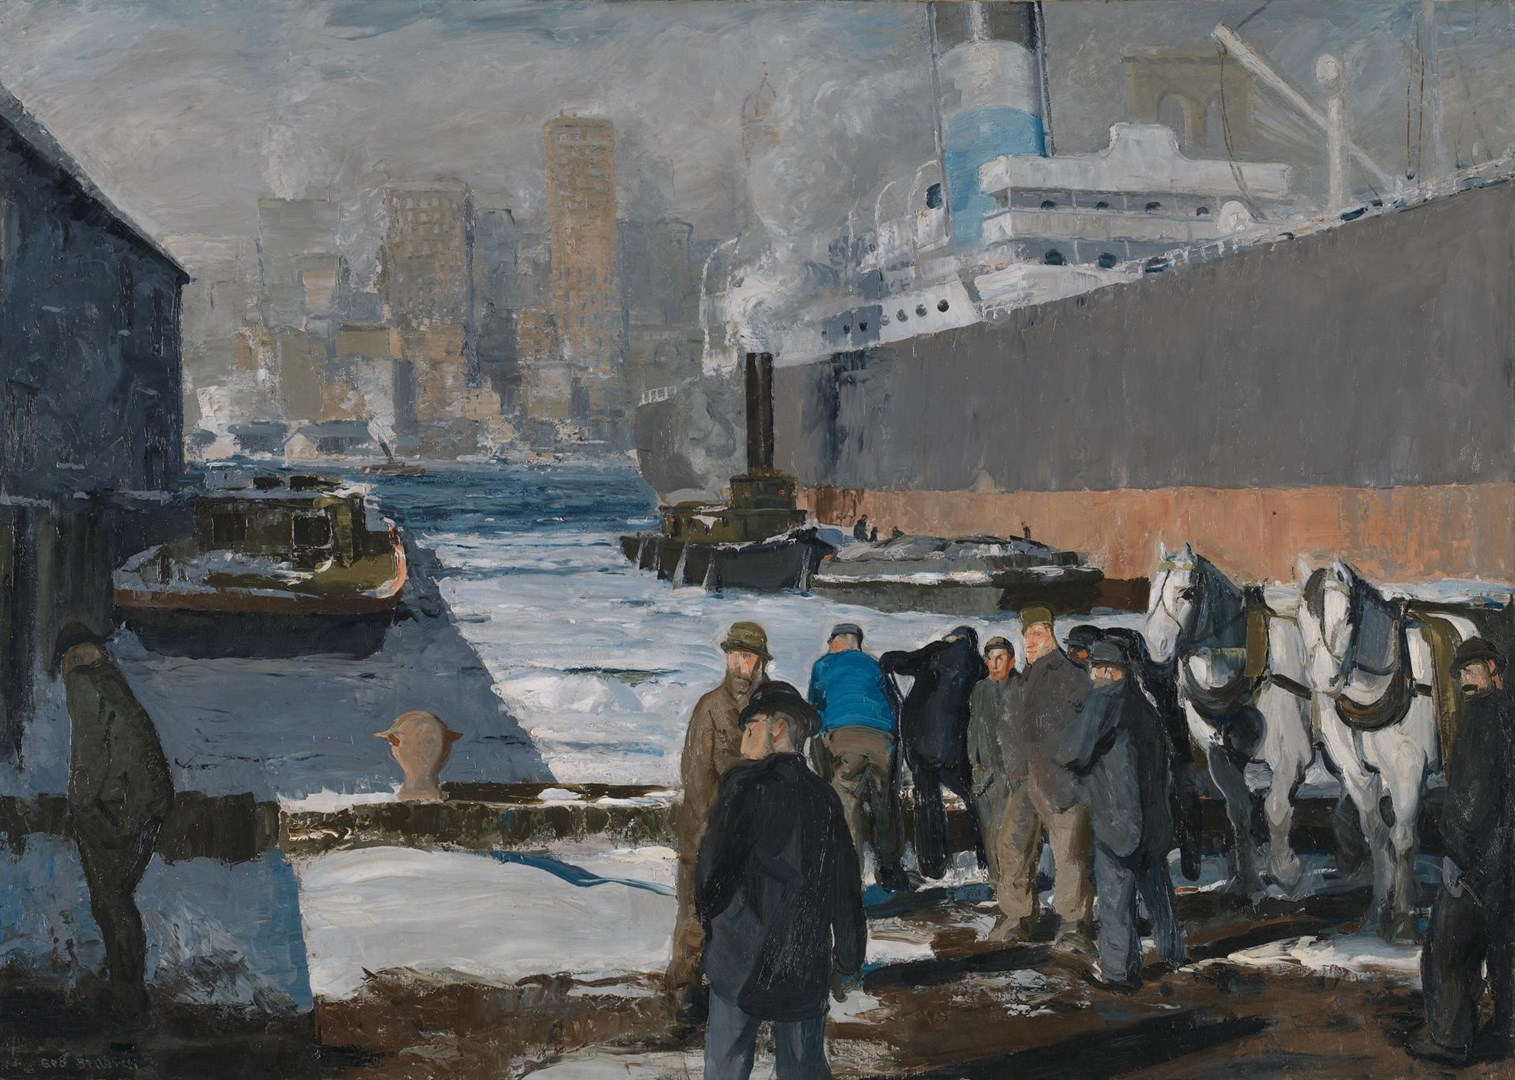 Men of the Docks by George Bellows